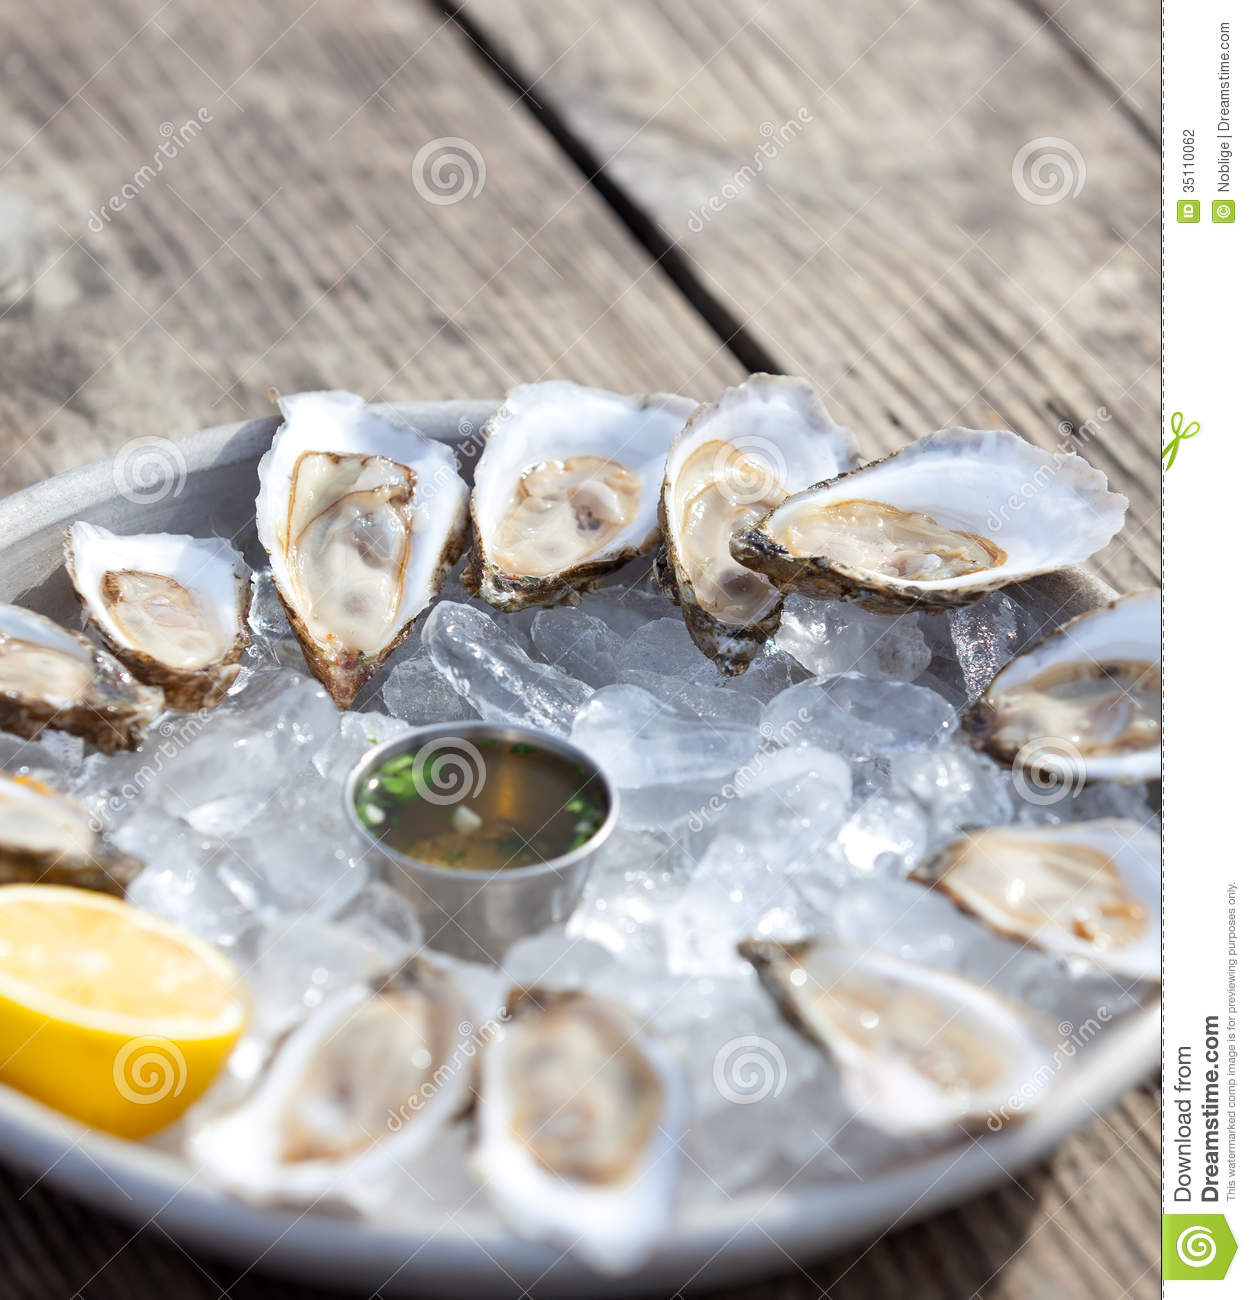 Fresh raw oysters - photo#28